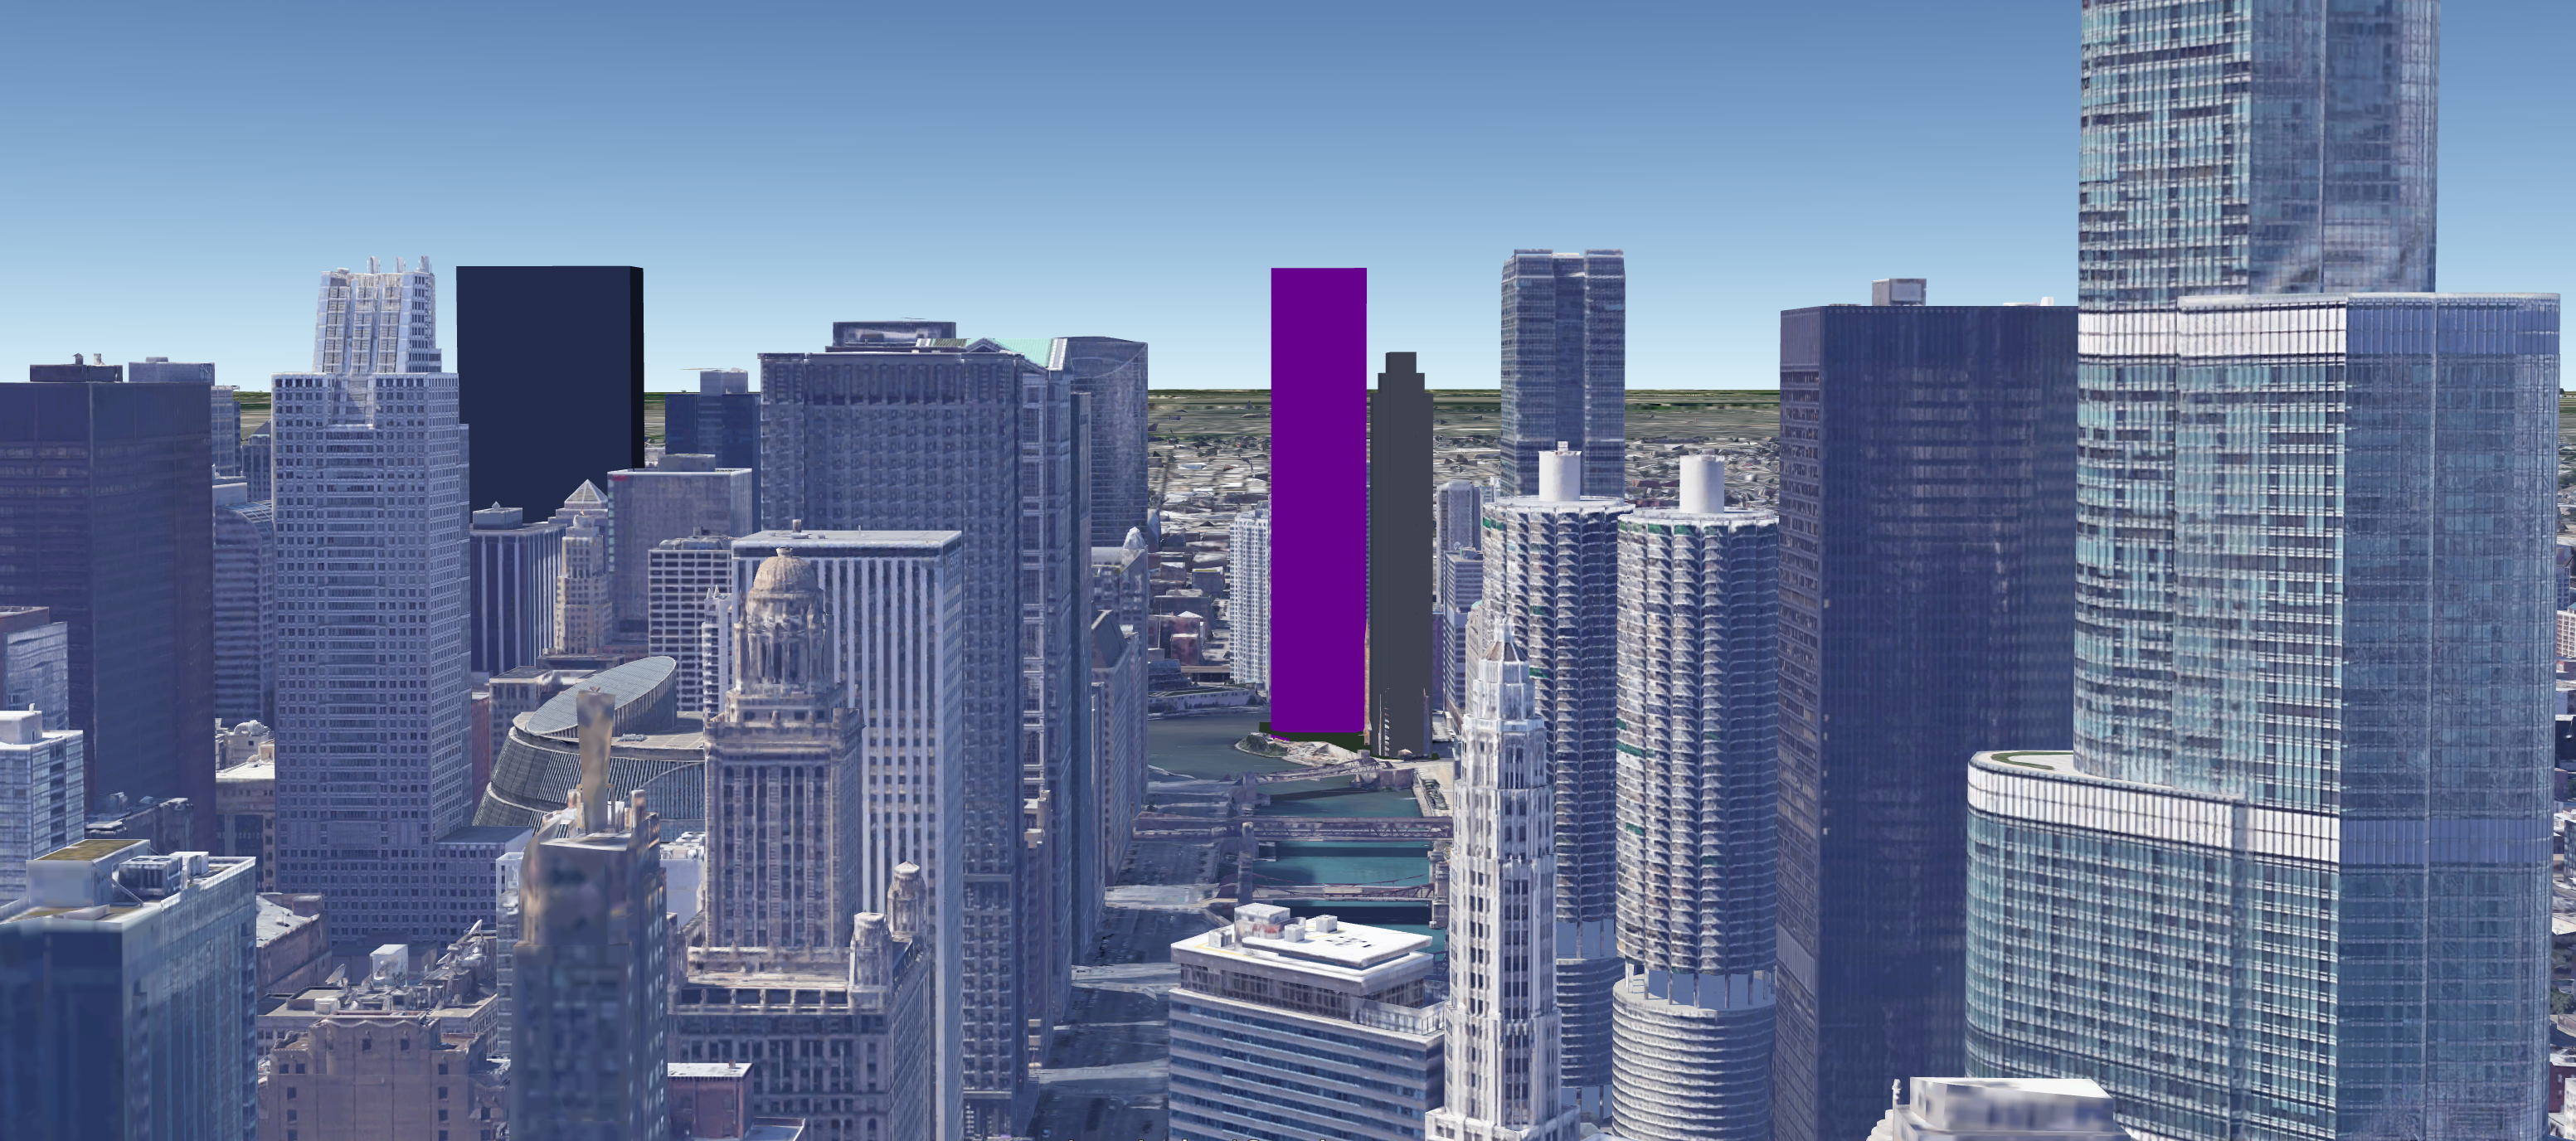 Approximate massing of Wolf Point South (purple), facing west